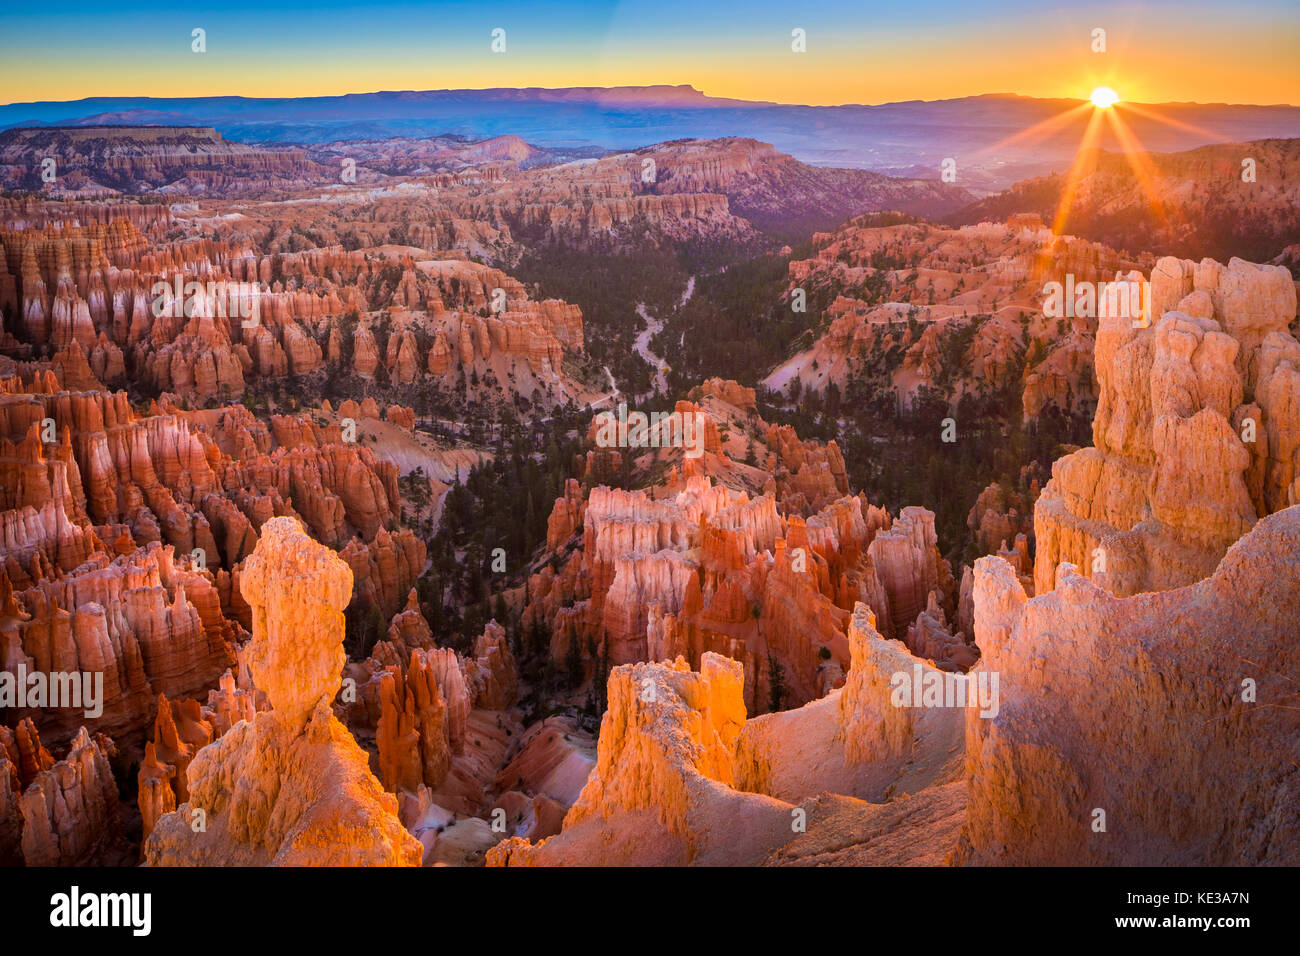 Bryce Canyon National Park, a sprawling reserve in southern Utah, is known for crimson-colored hoodoos, which are Stock Photo